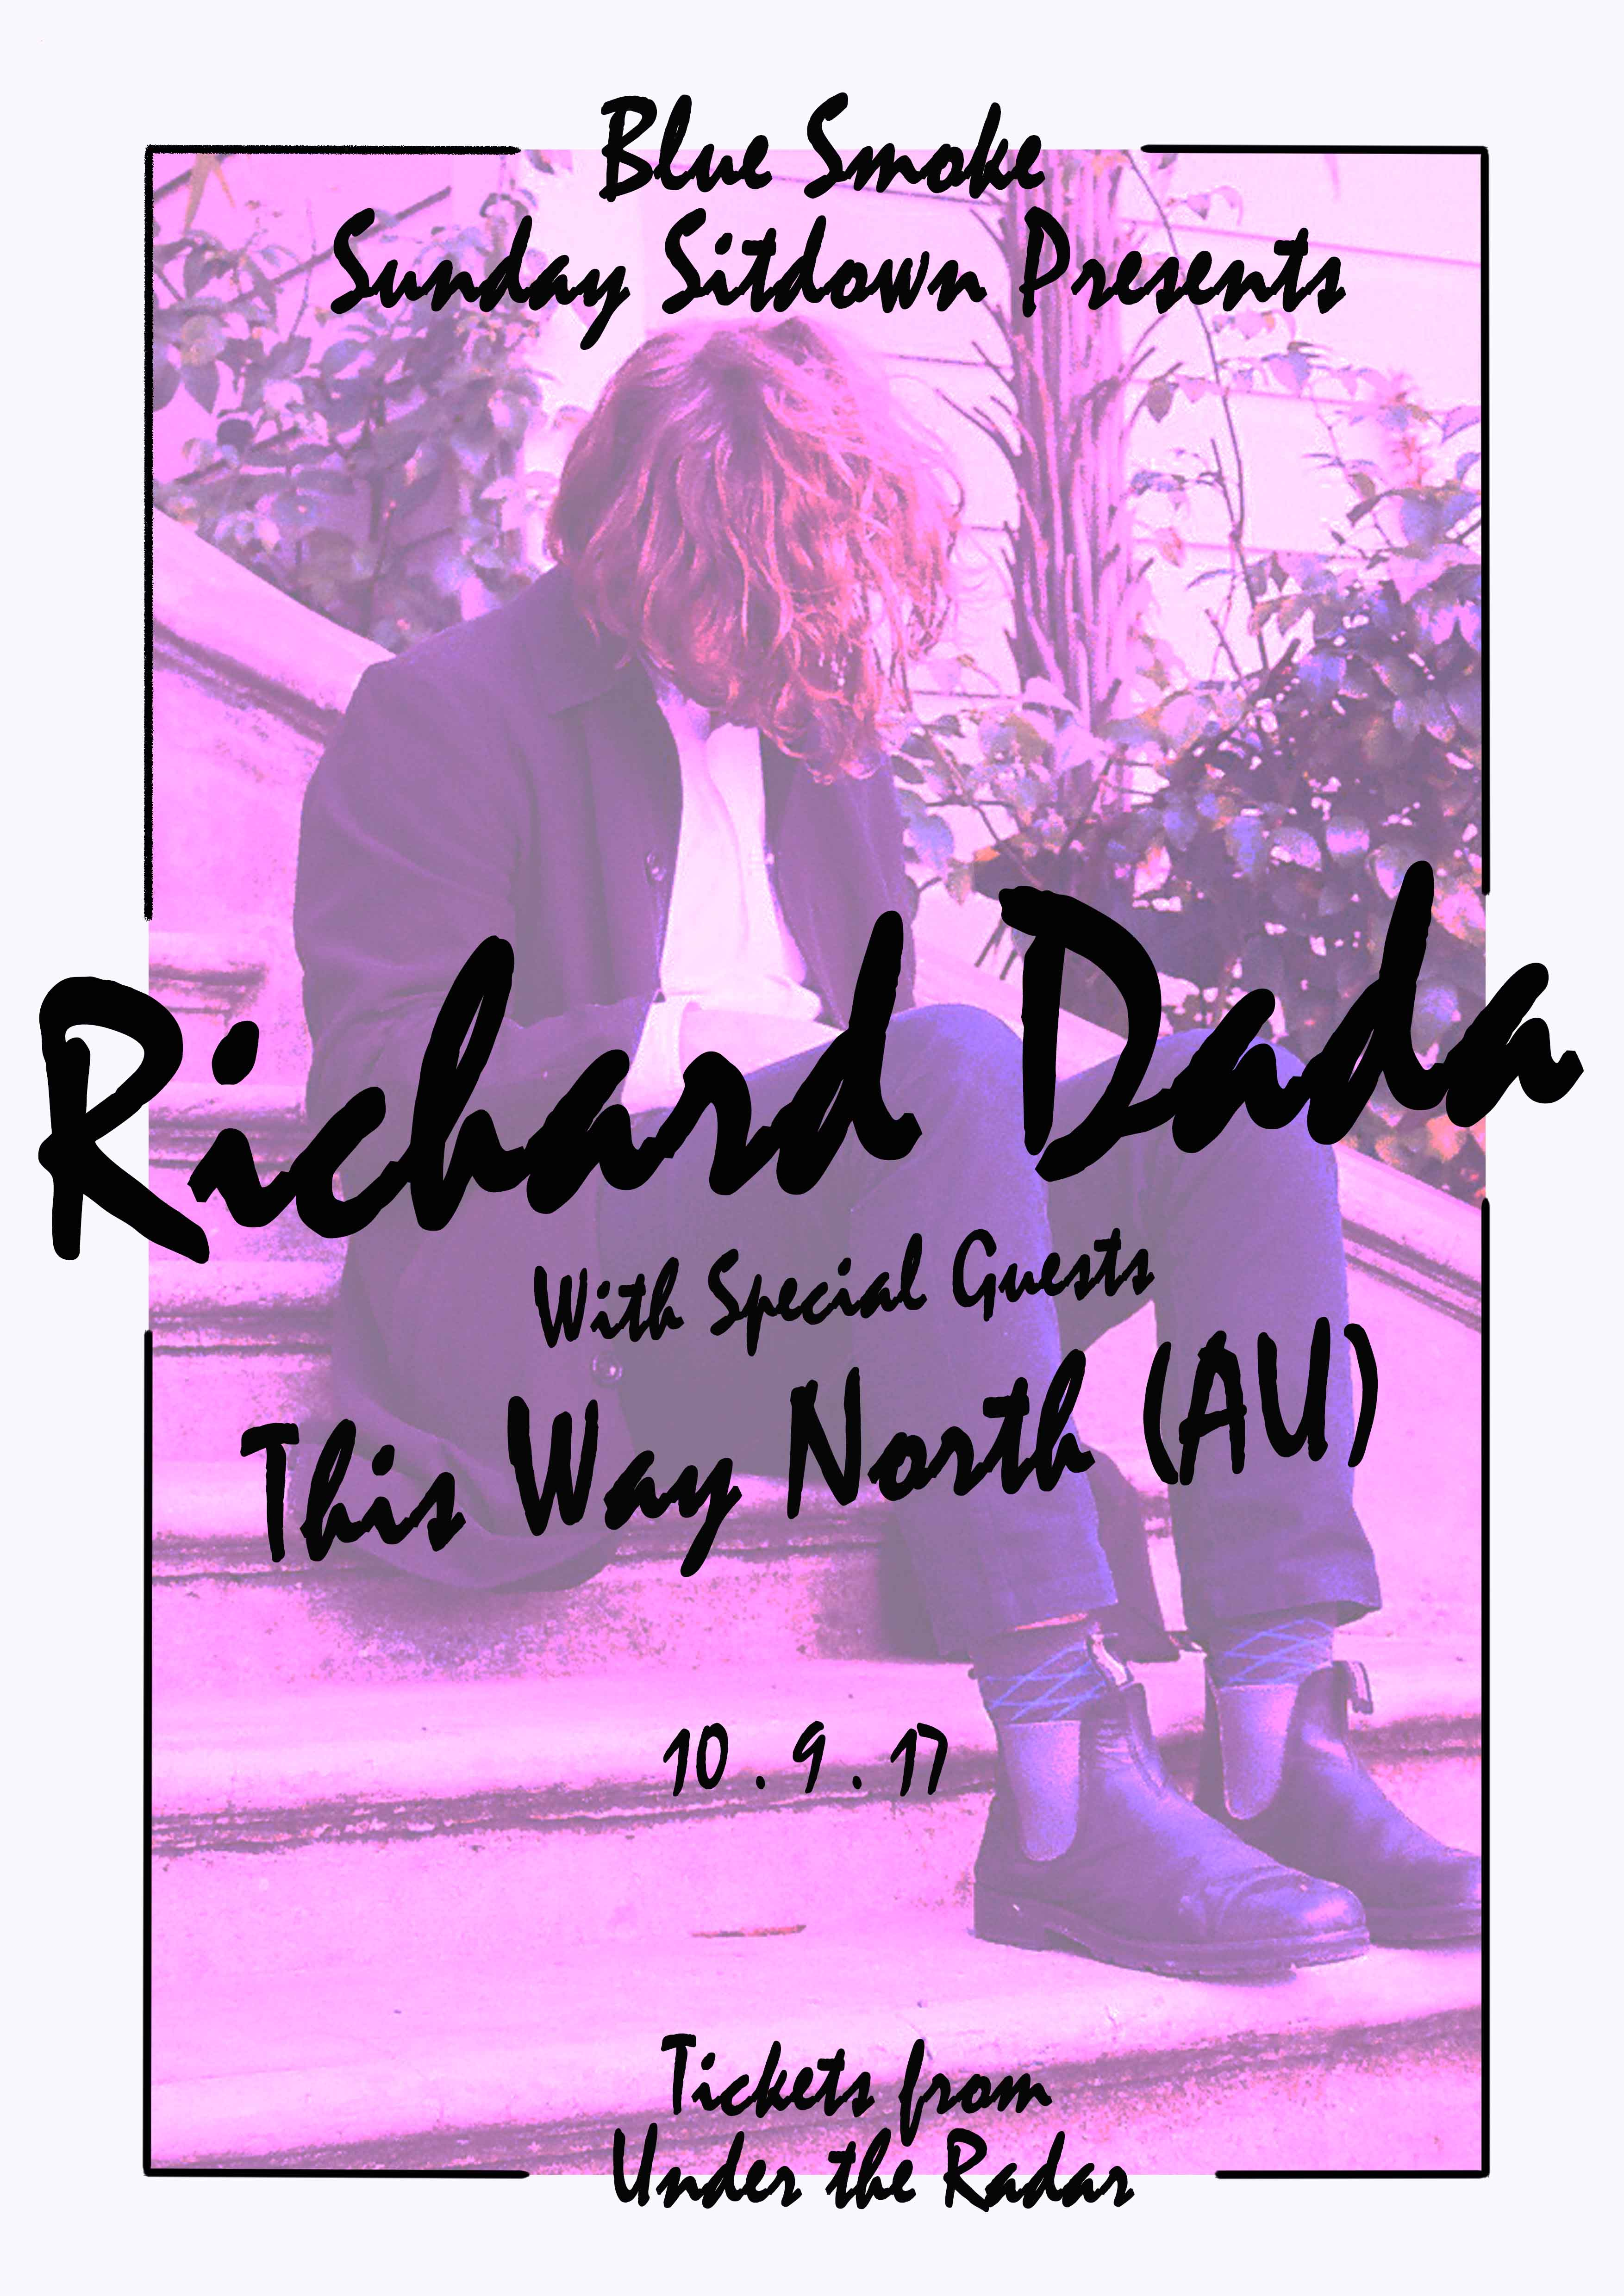 The Sunday Sit Down: Richard Dada with This Way North